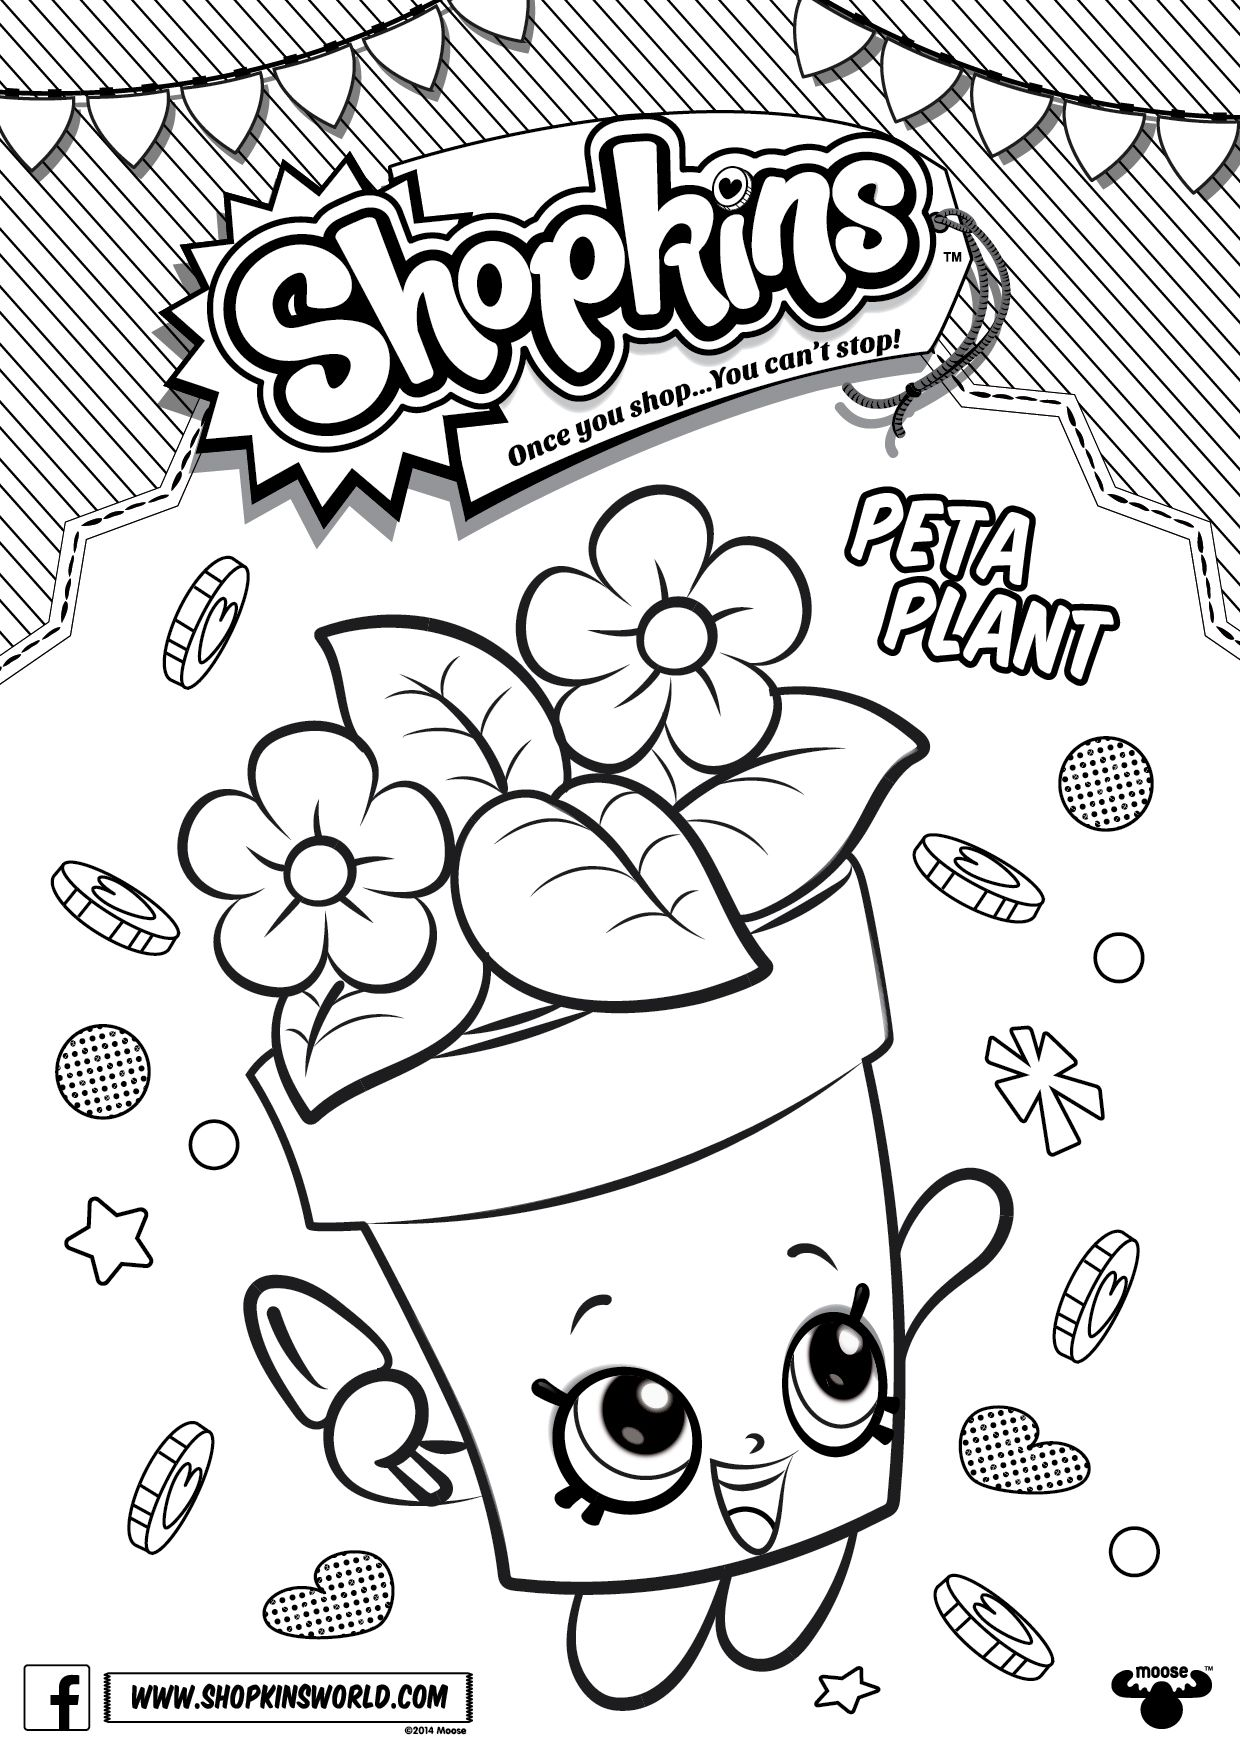 Shopkins coloring pages season 5 shopkins awesome printable coloring - Shopkins Colour In Peta Plant Find This Pin And More On Coloring Sheets